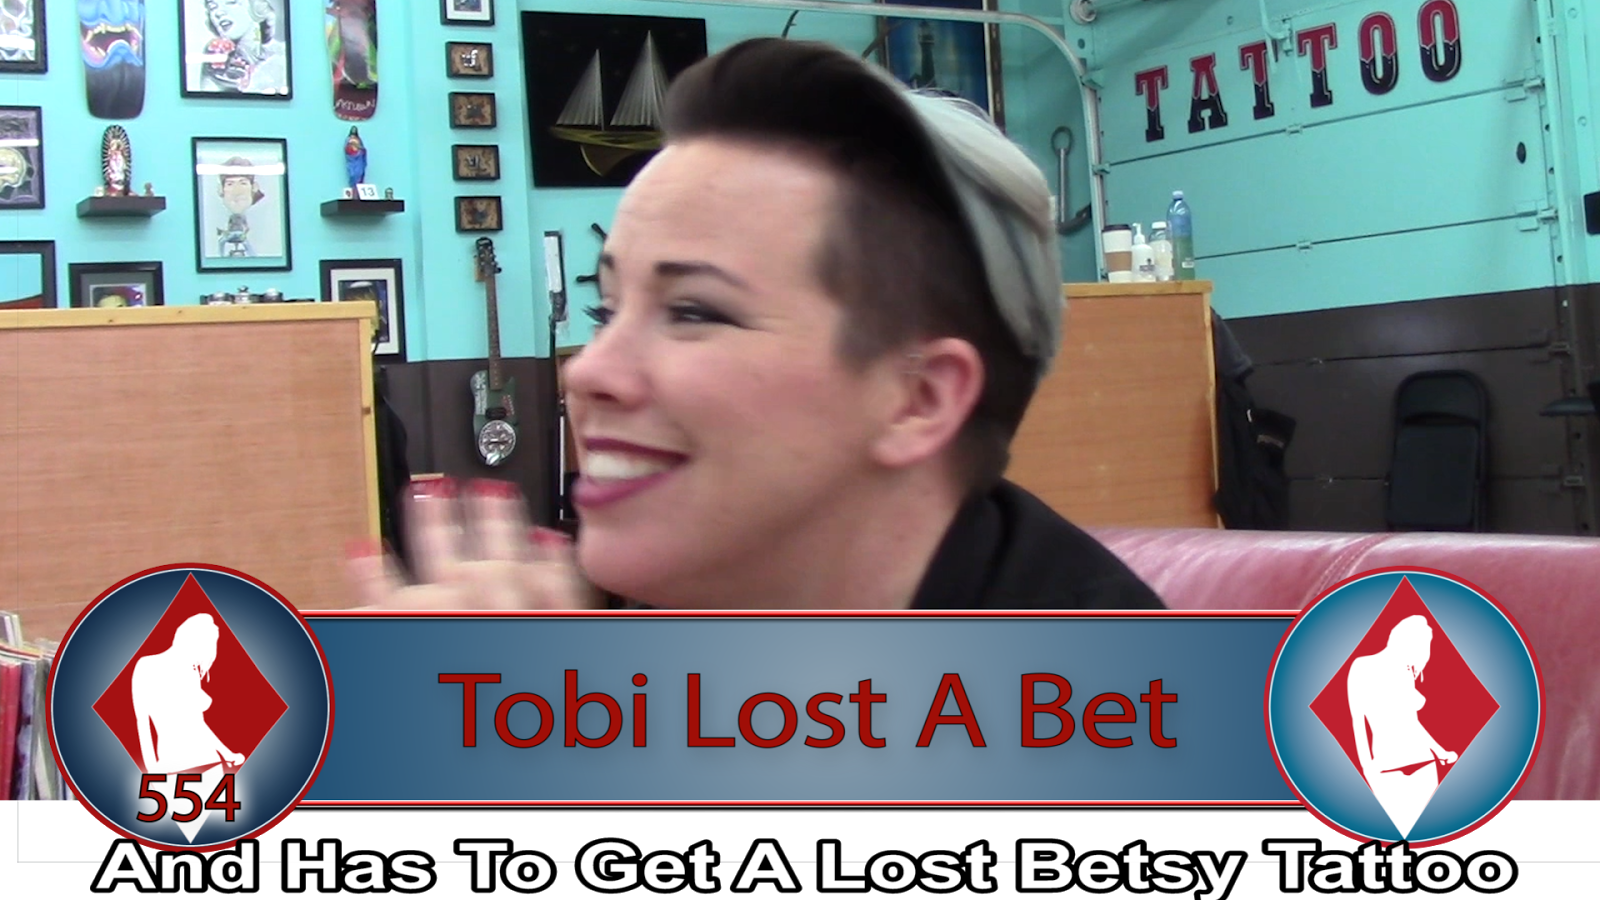 lostbets